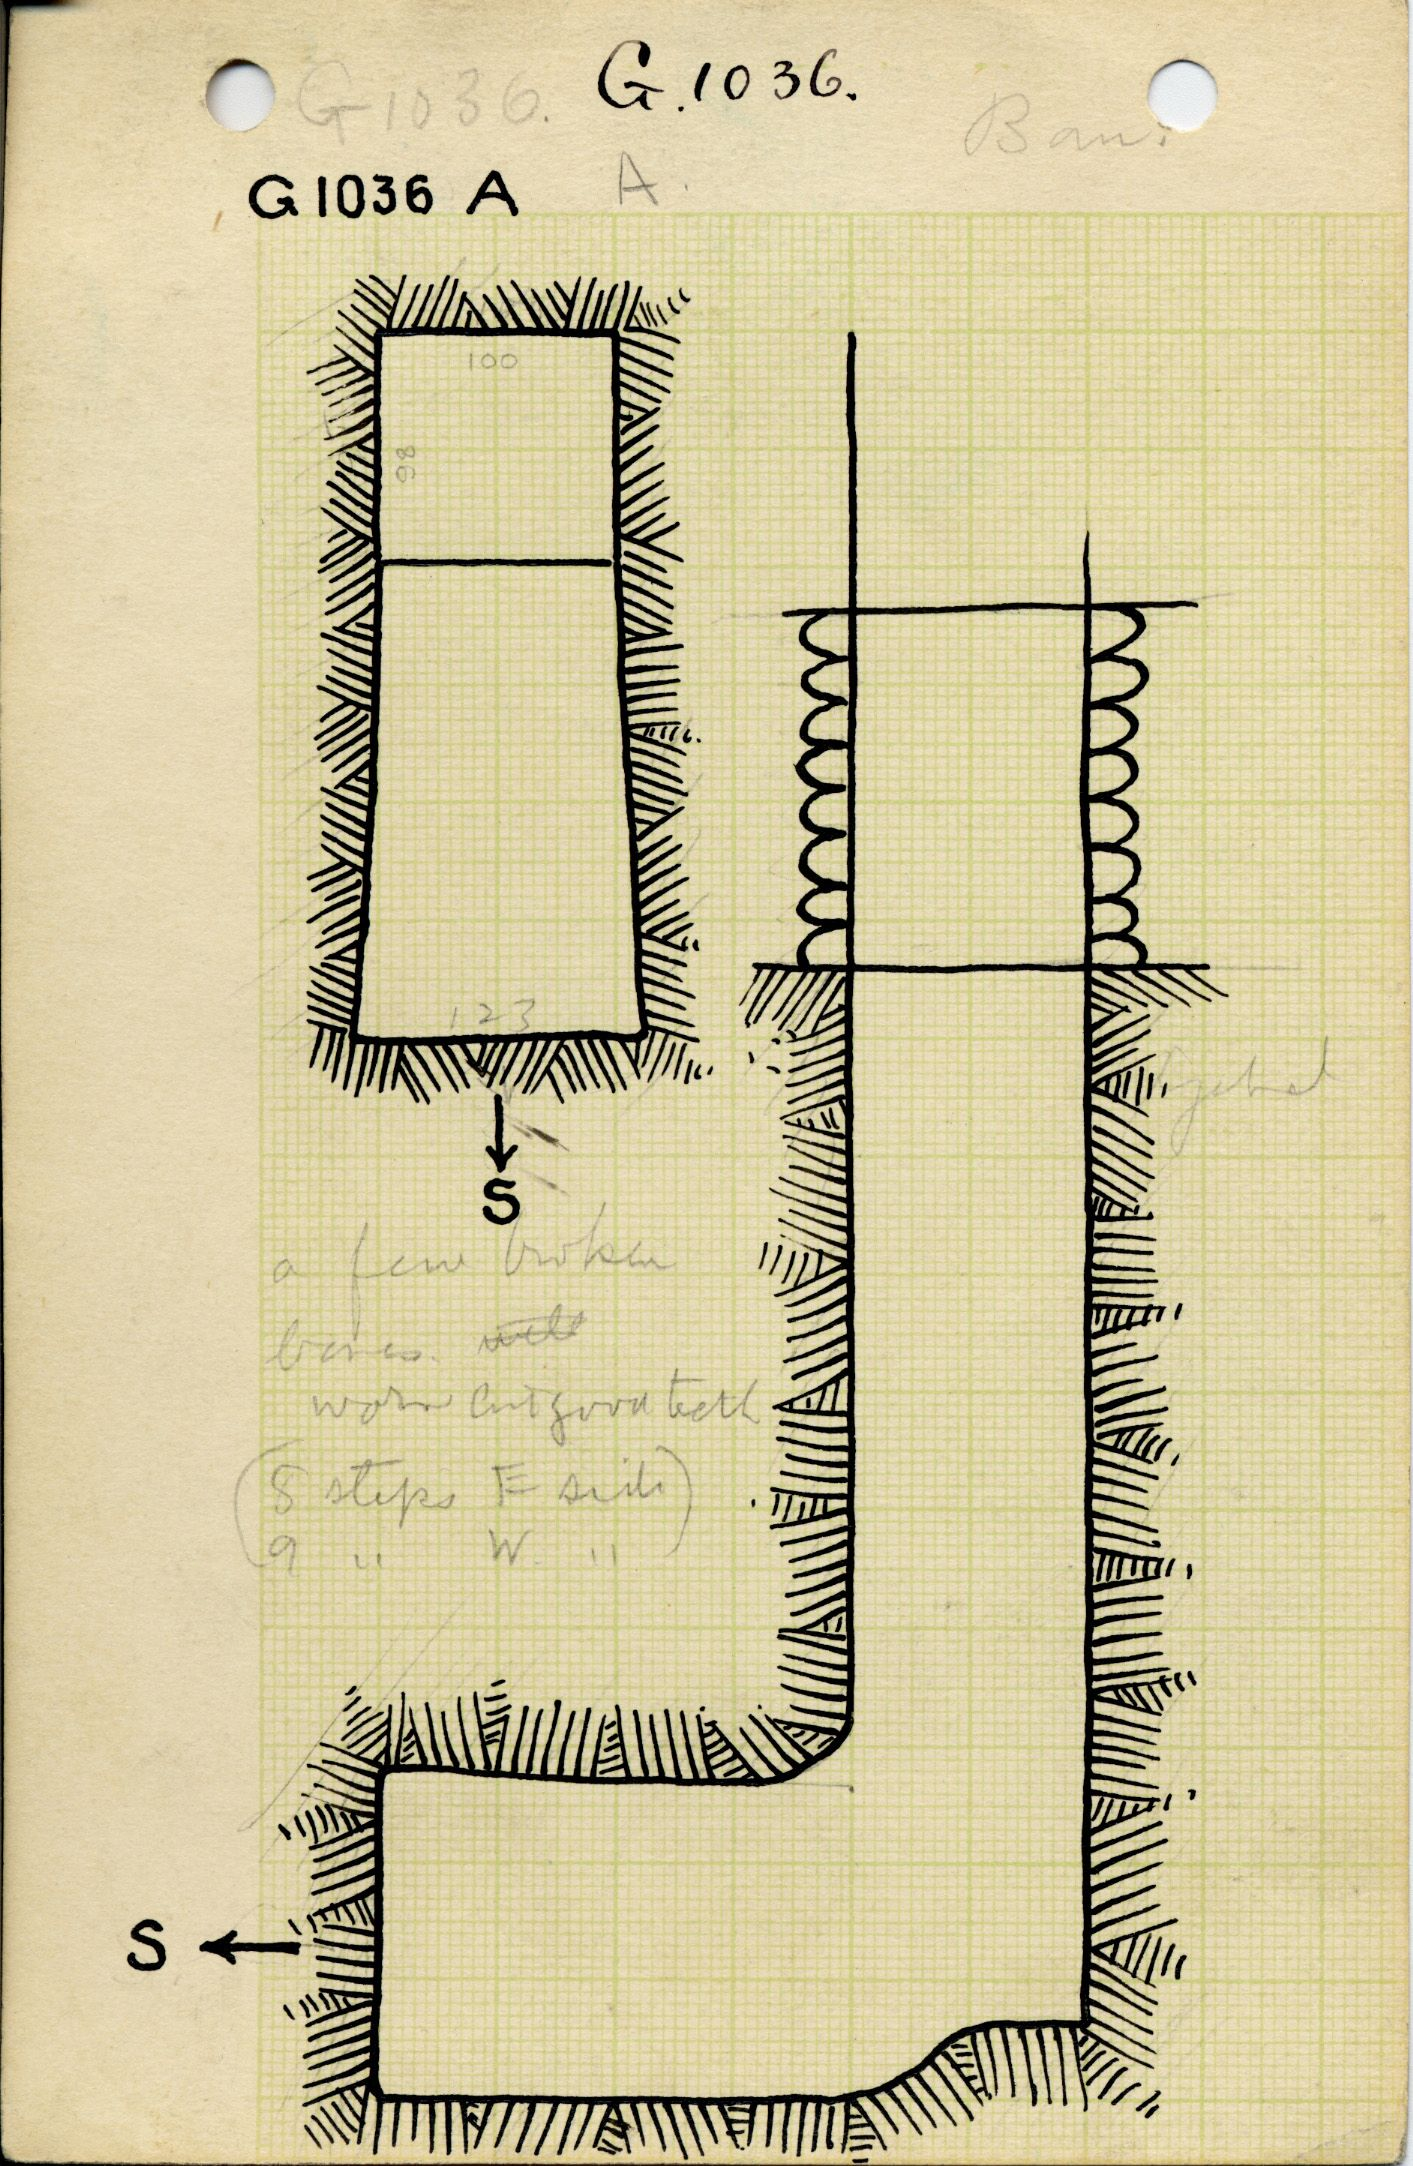 Maps and plans: G 1036, Shaft A